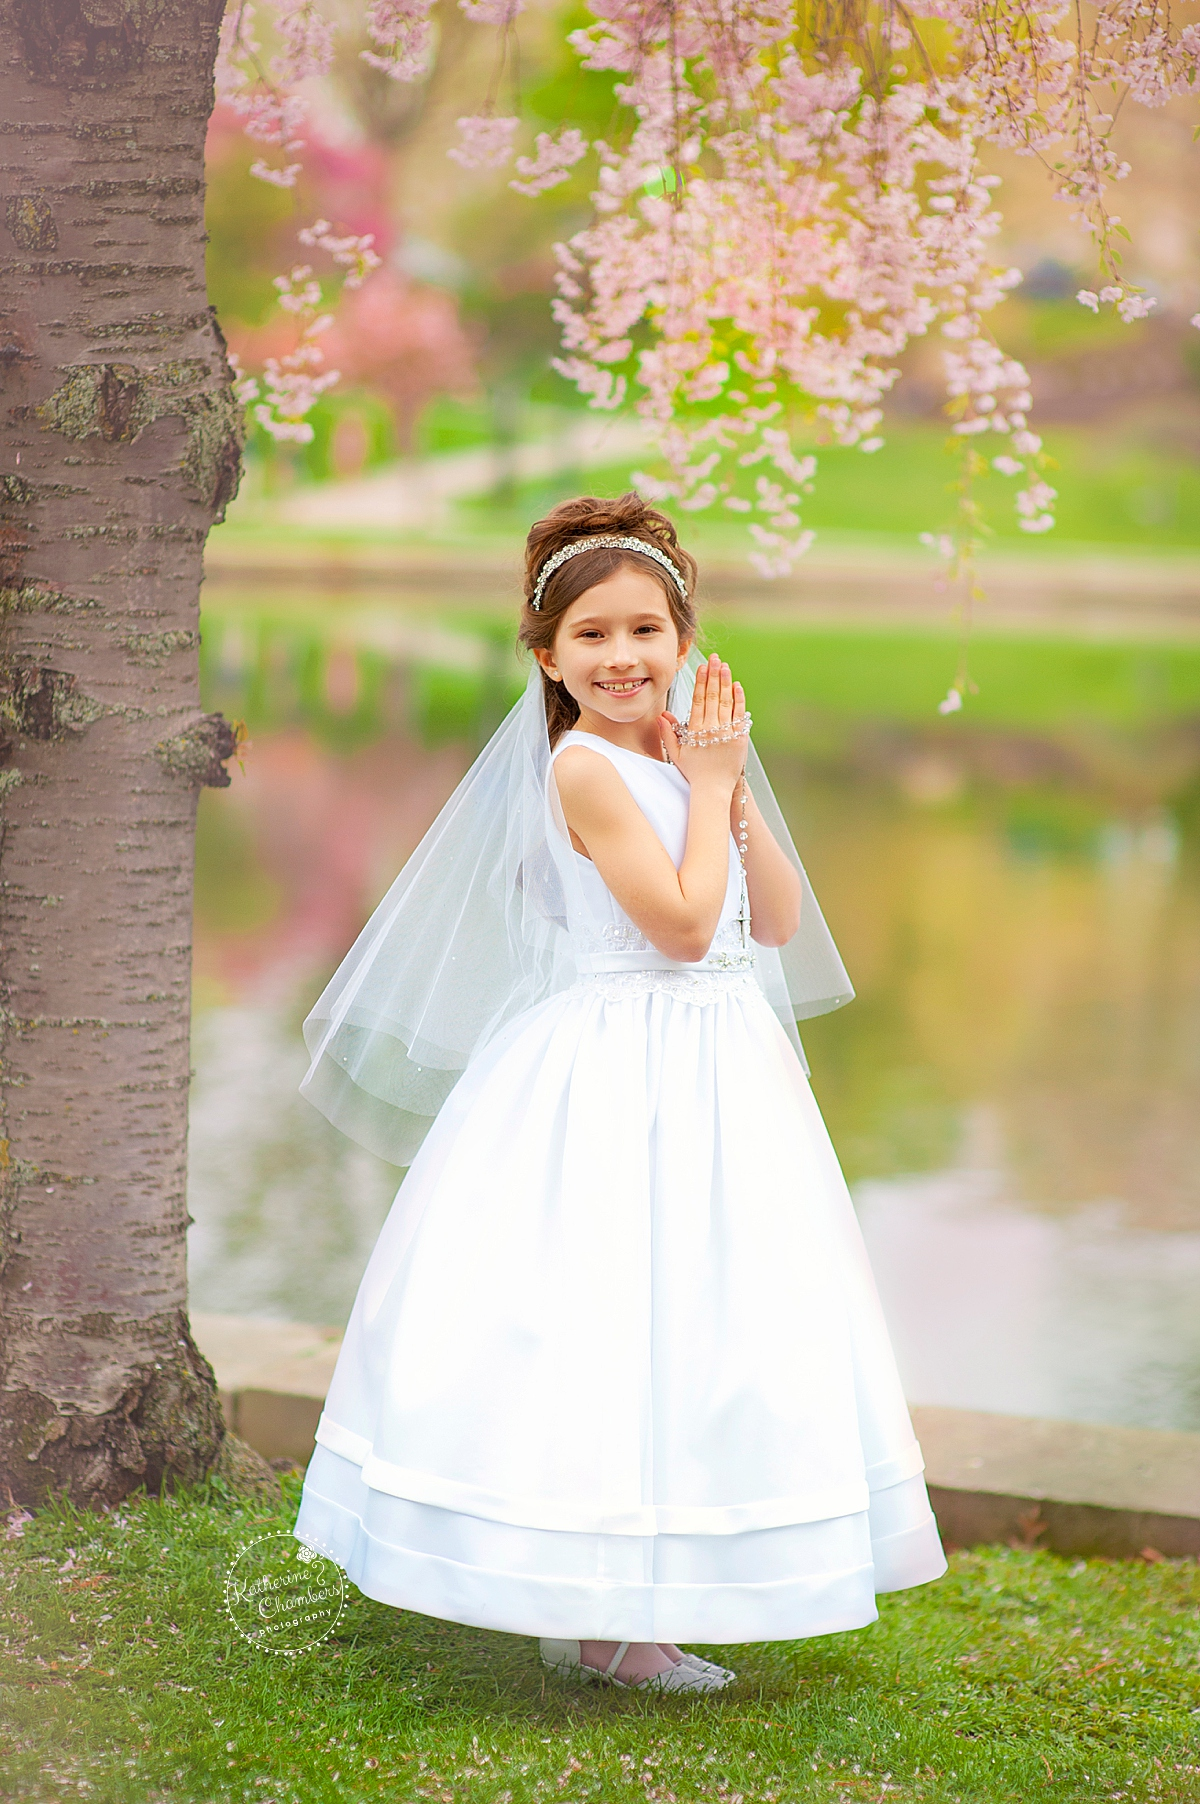 Spring Photo Session | Outdoor First Communion Photography